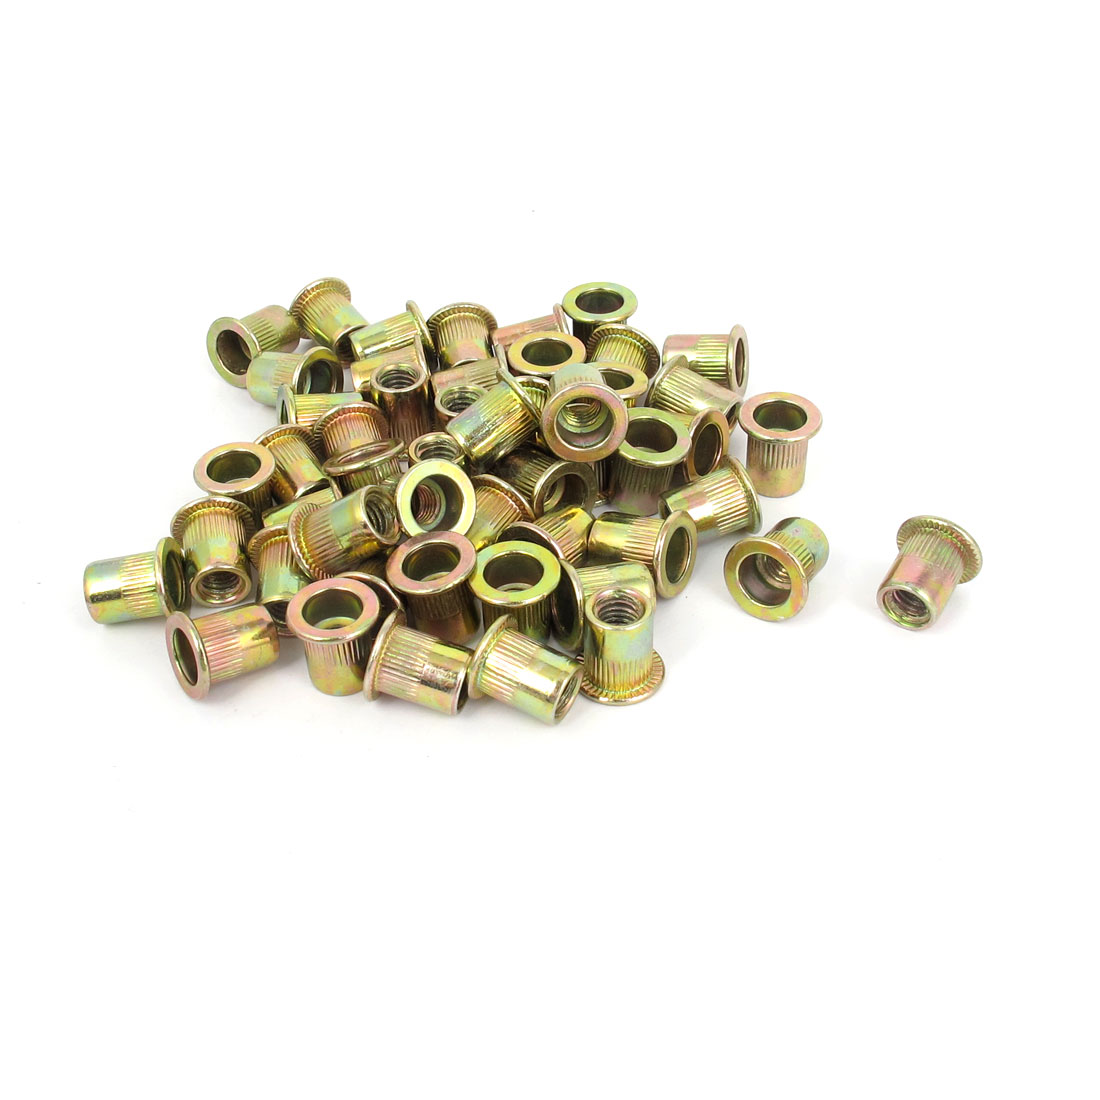 50 Pcs M6x12mm Flat Head Threaded Rivet Nut Insert Nutsert Fasteners 1mm Pitch